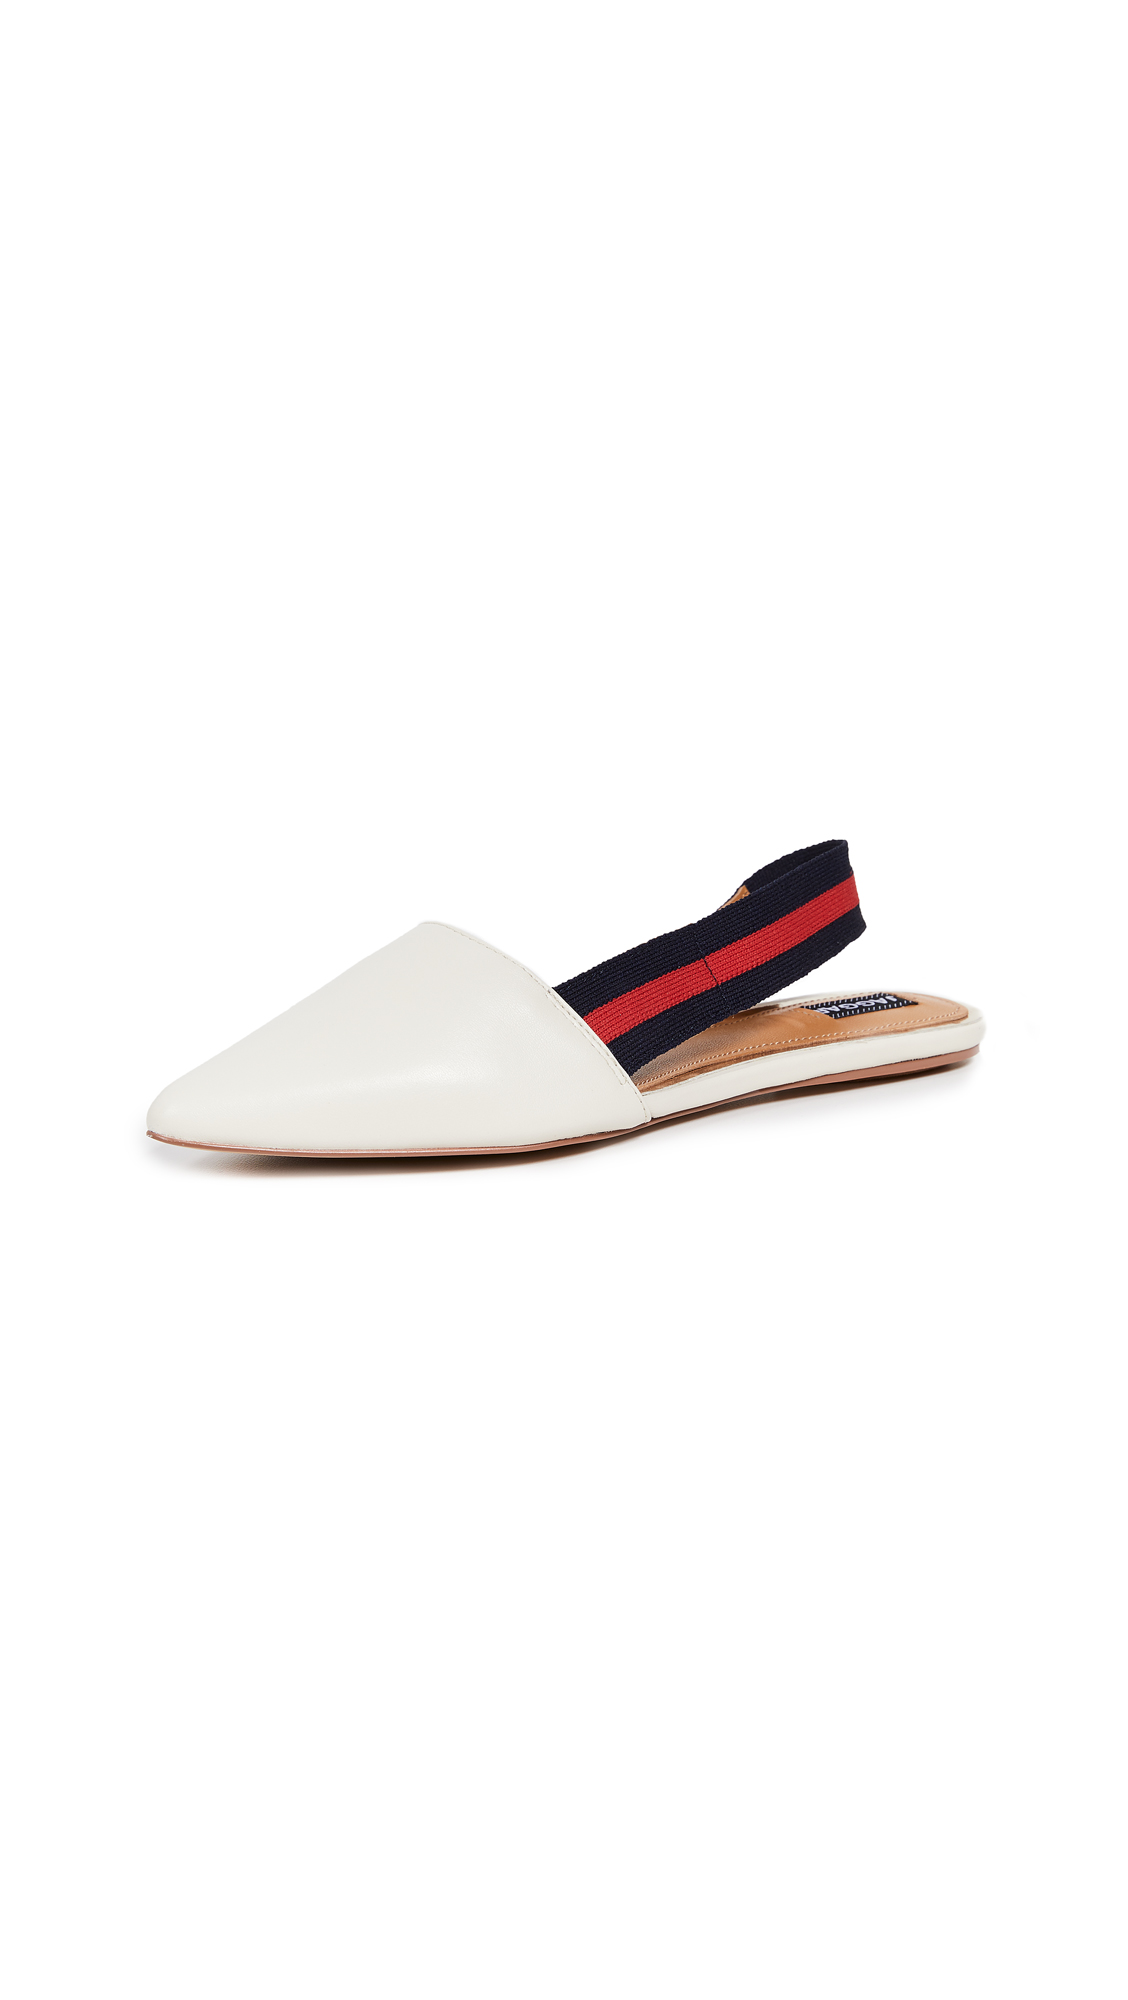 JAGGAR Action Leather Slingback Flats in Cloud